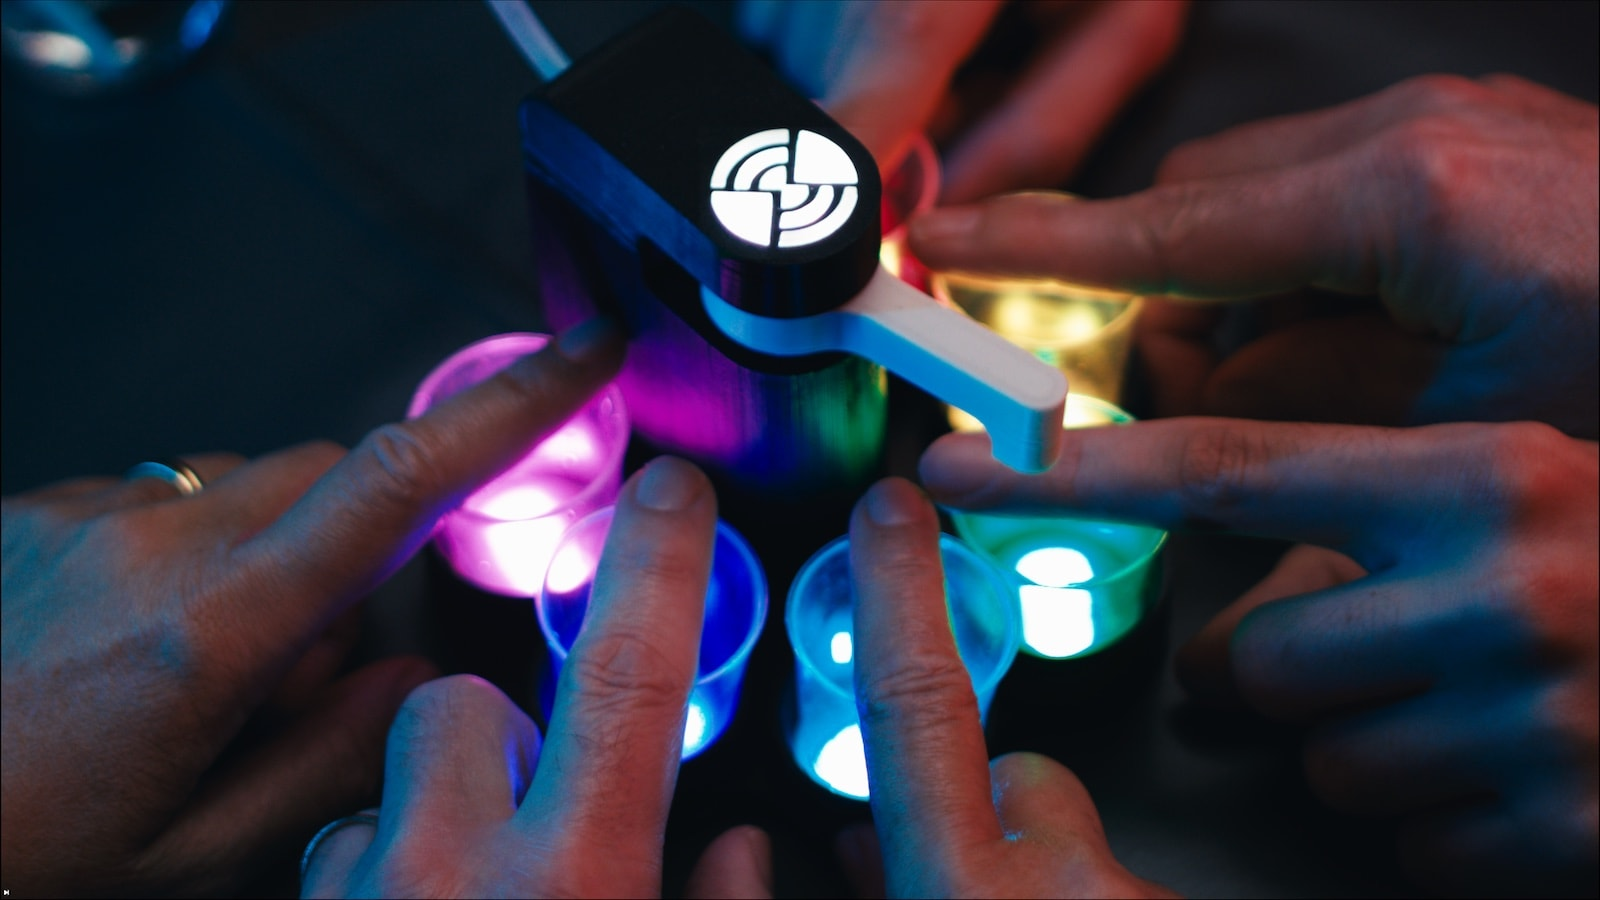 RevoRoulette robot shot dispenser takes your party games up a notch